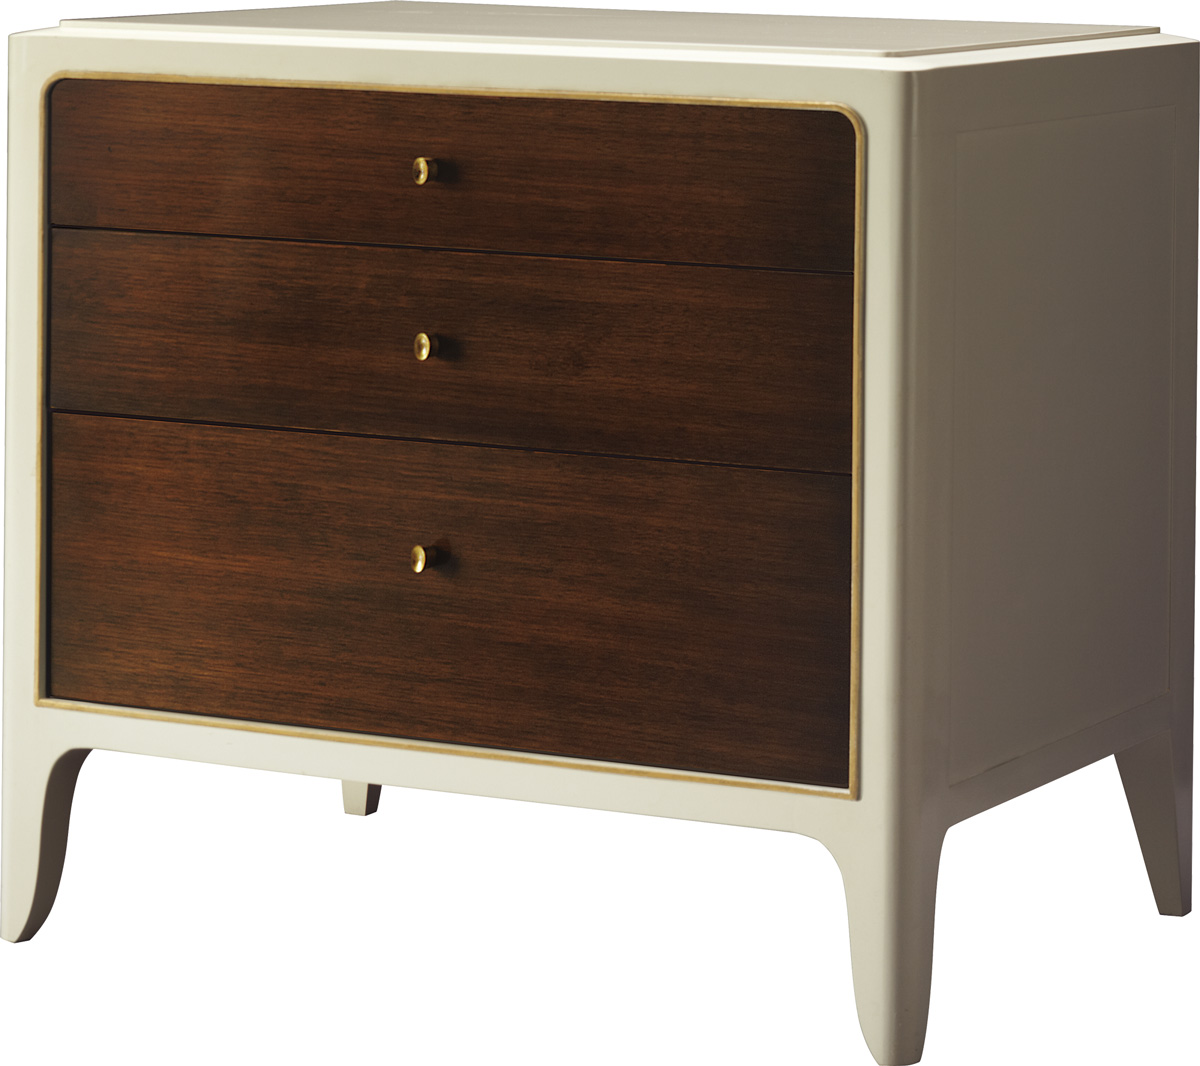 SOFT CORNER BEDSIDE CHEST